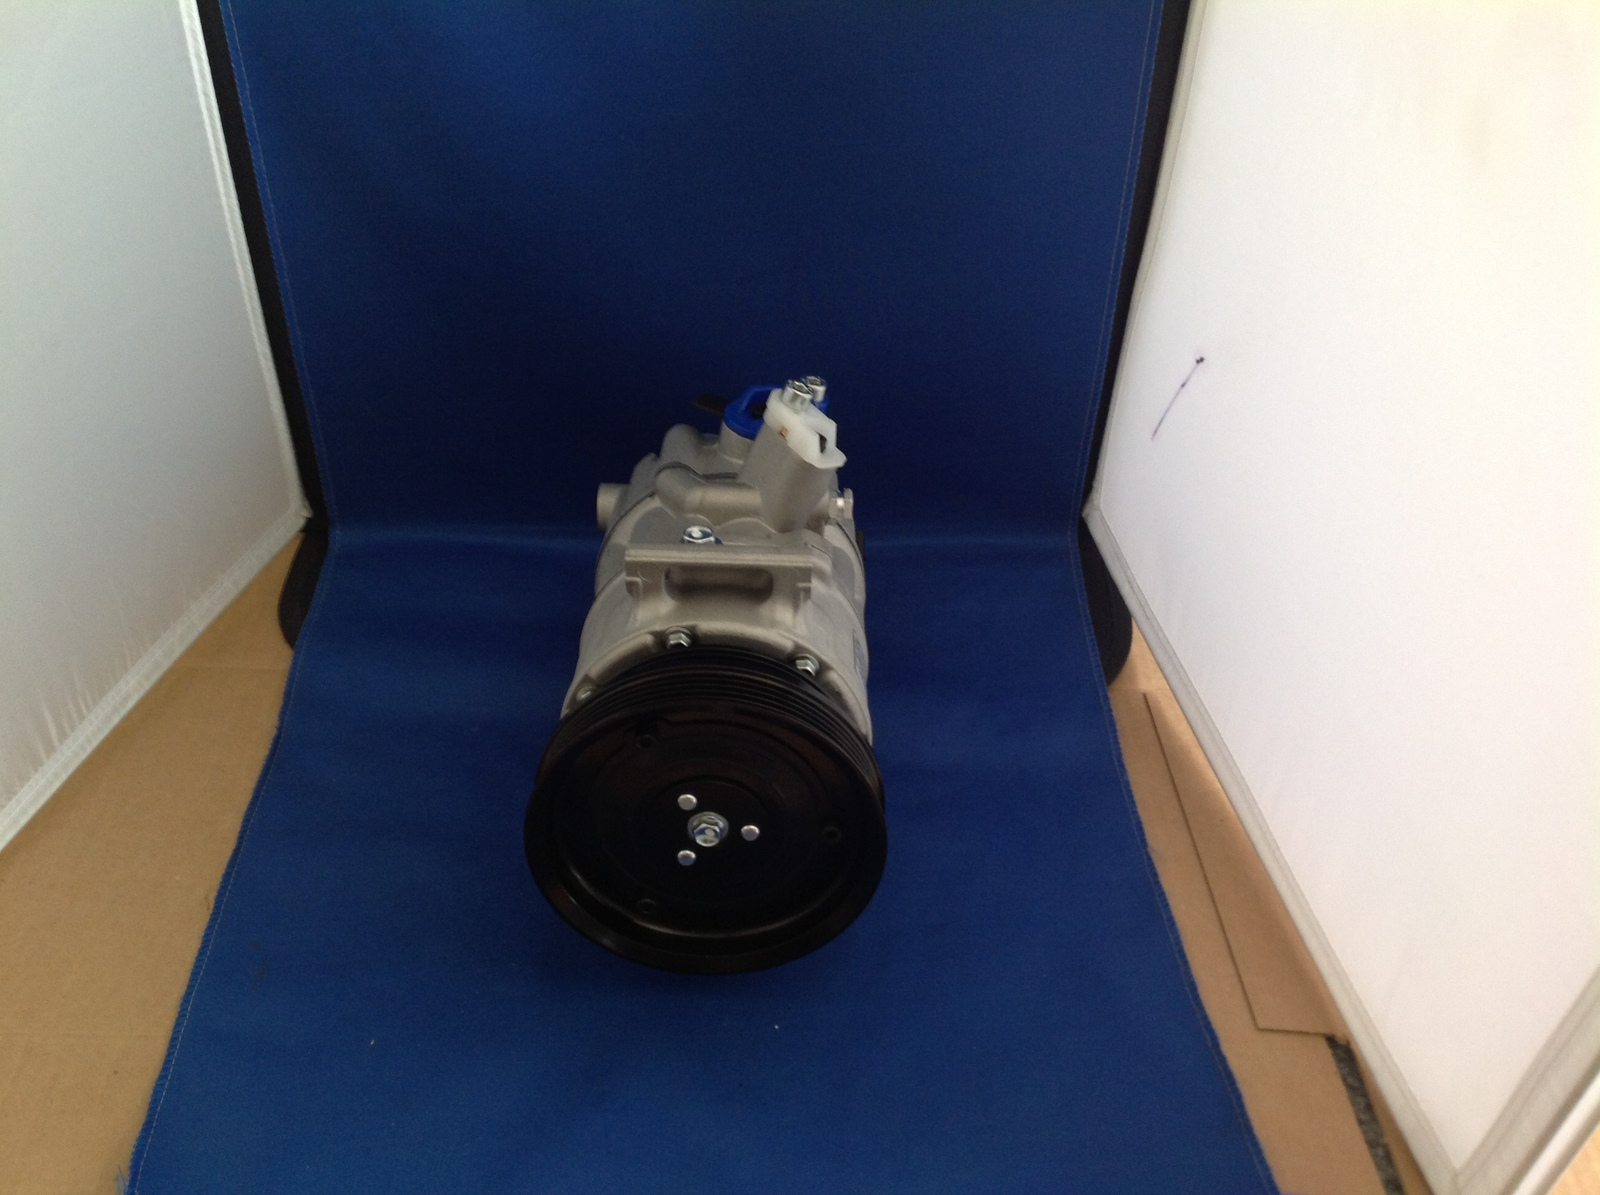 06-14 VW Volkswagen Passat 2.5 VR6 3.6 Auto AC Air Conditioning Compressor Part